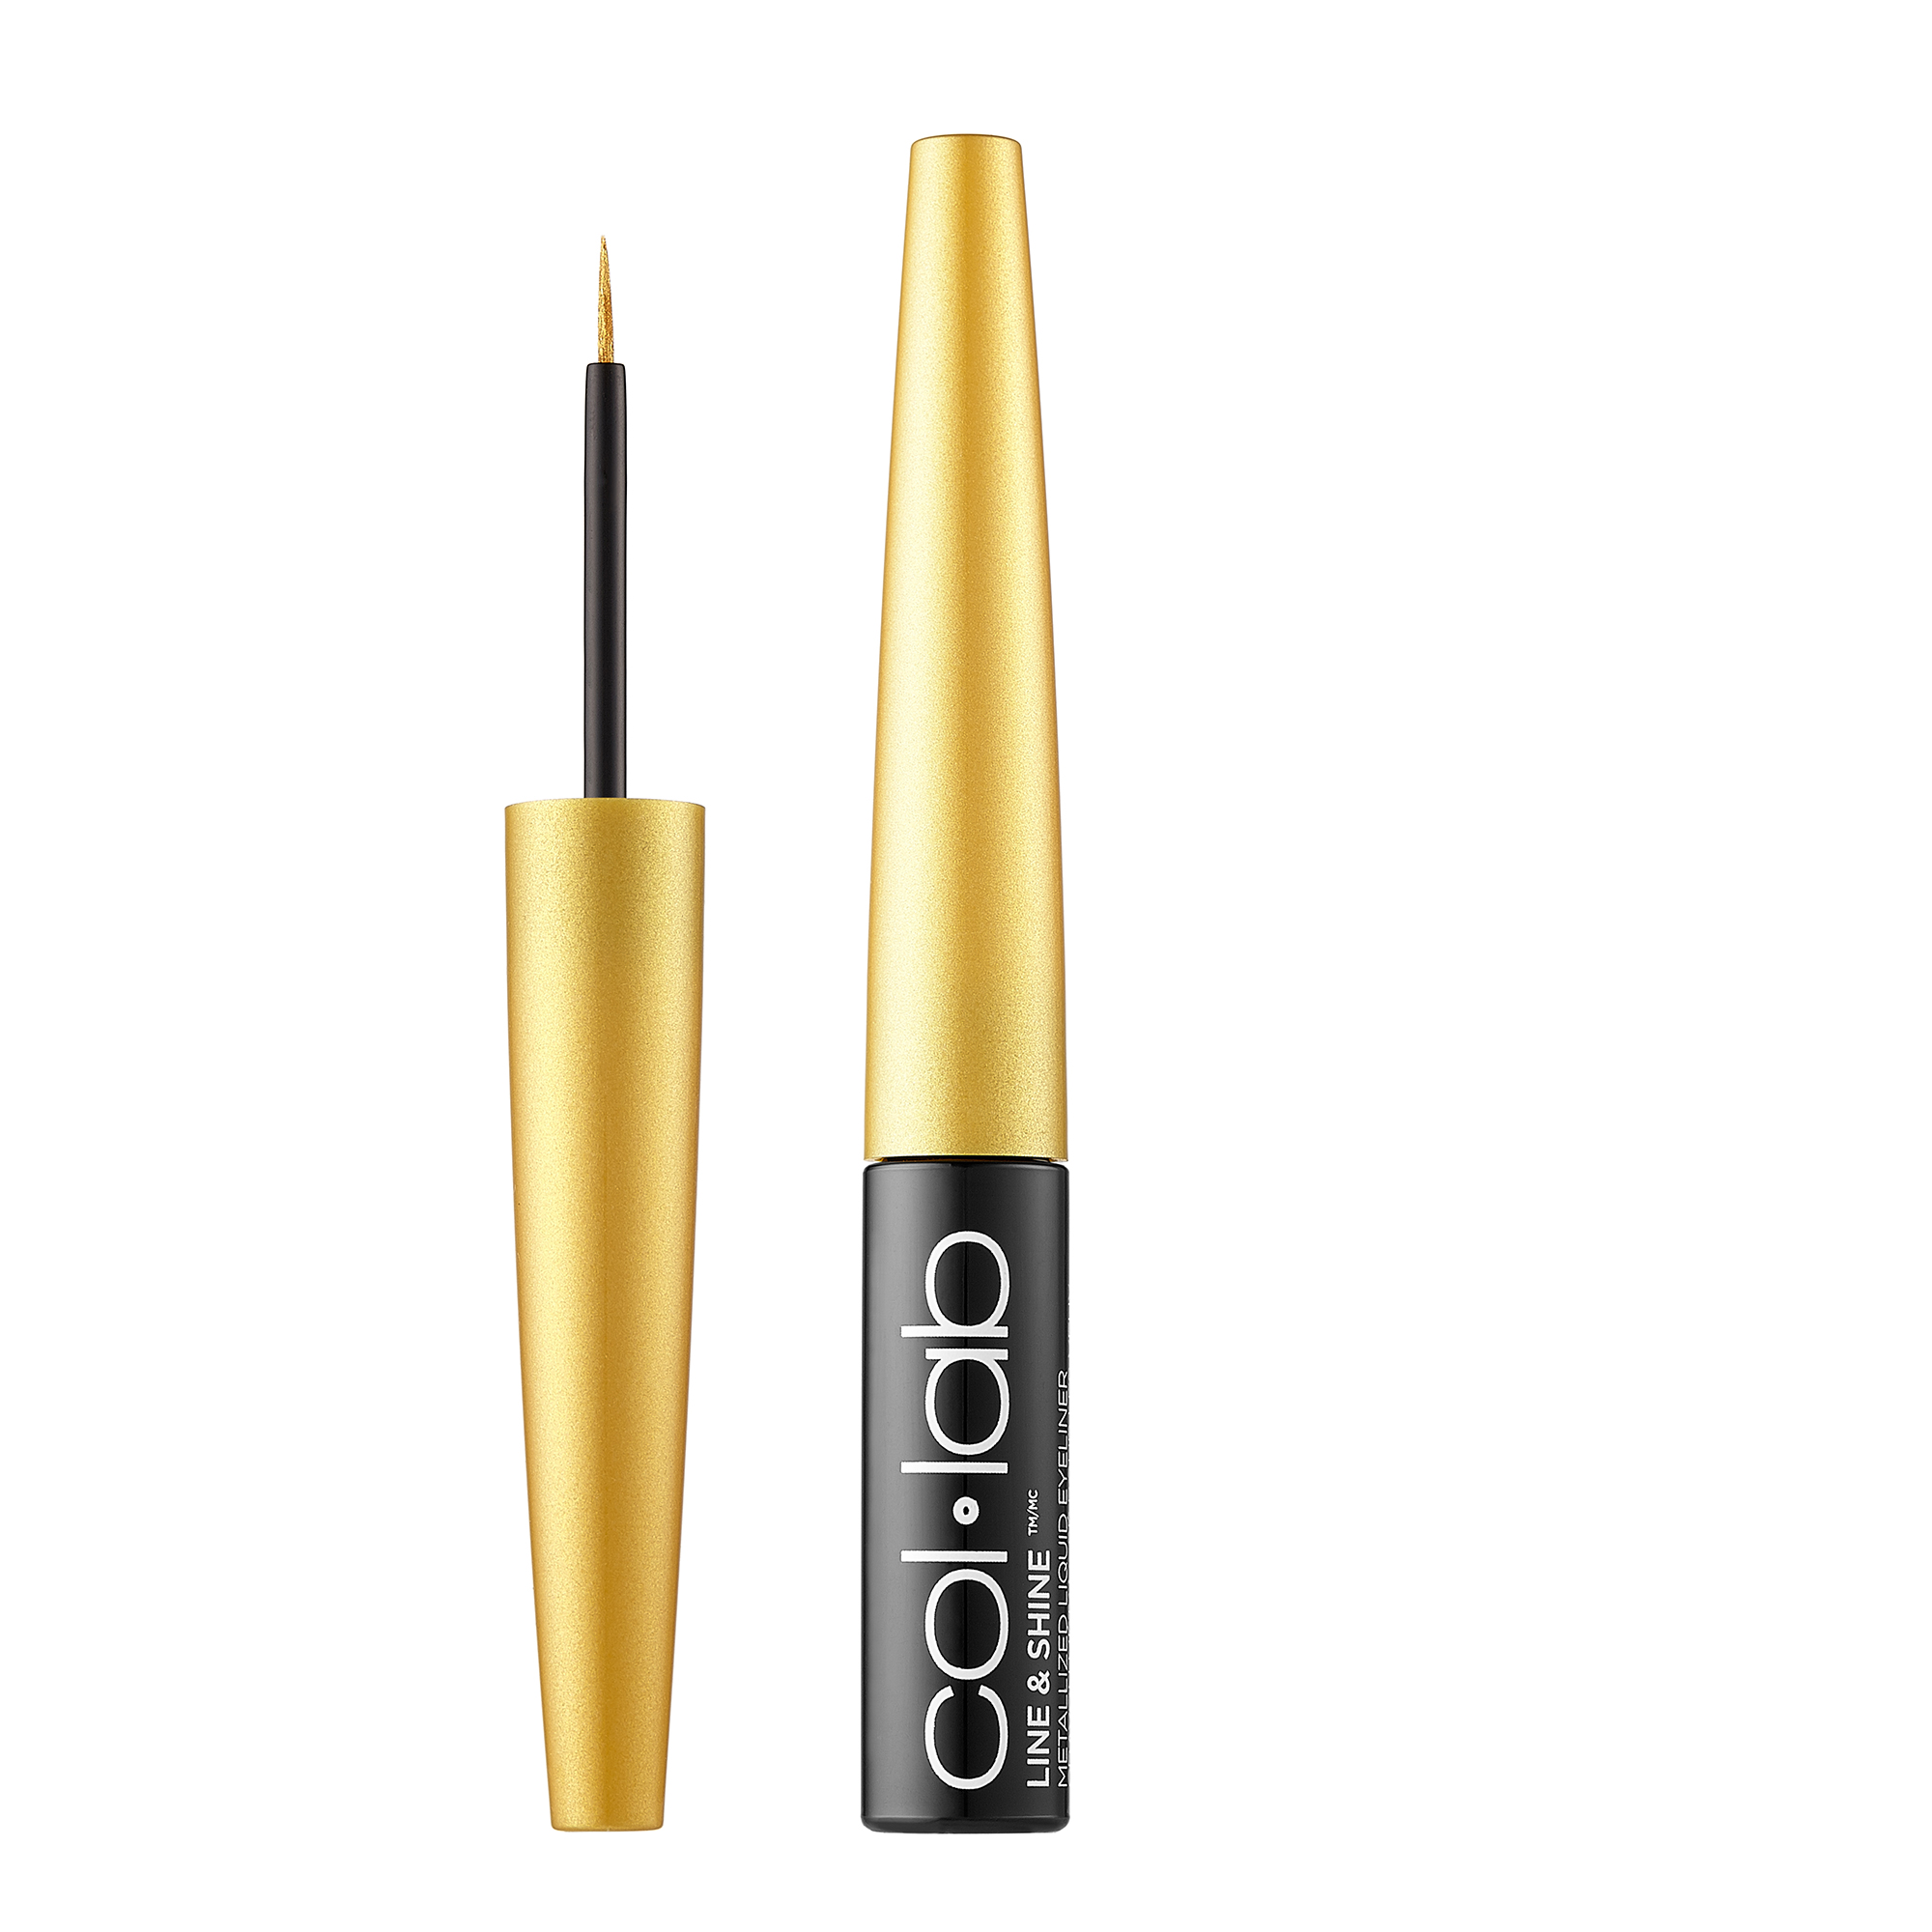 Line & Shine Metallized Liquid Eyeliner SBS-389810.jpg